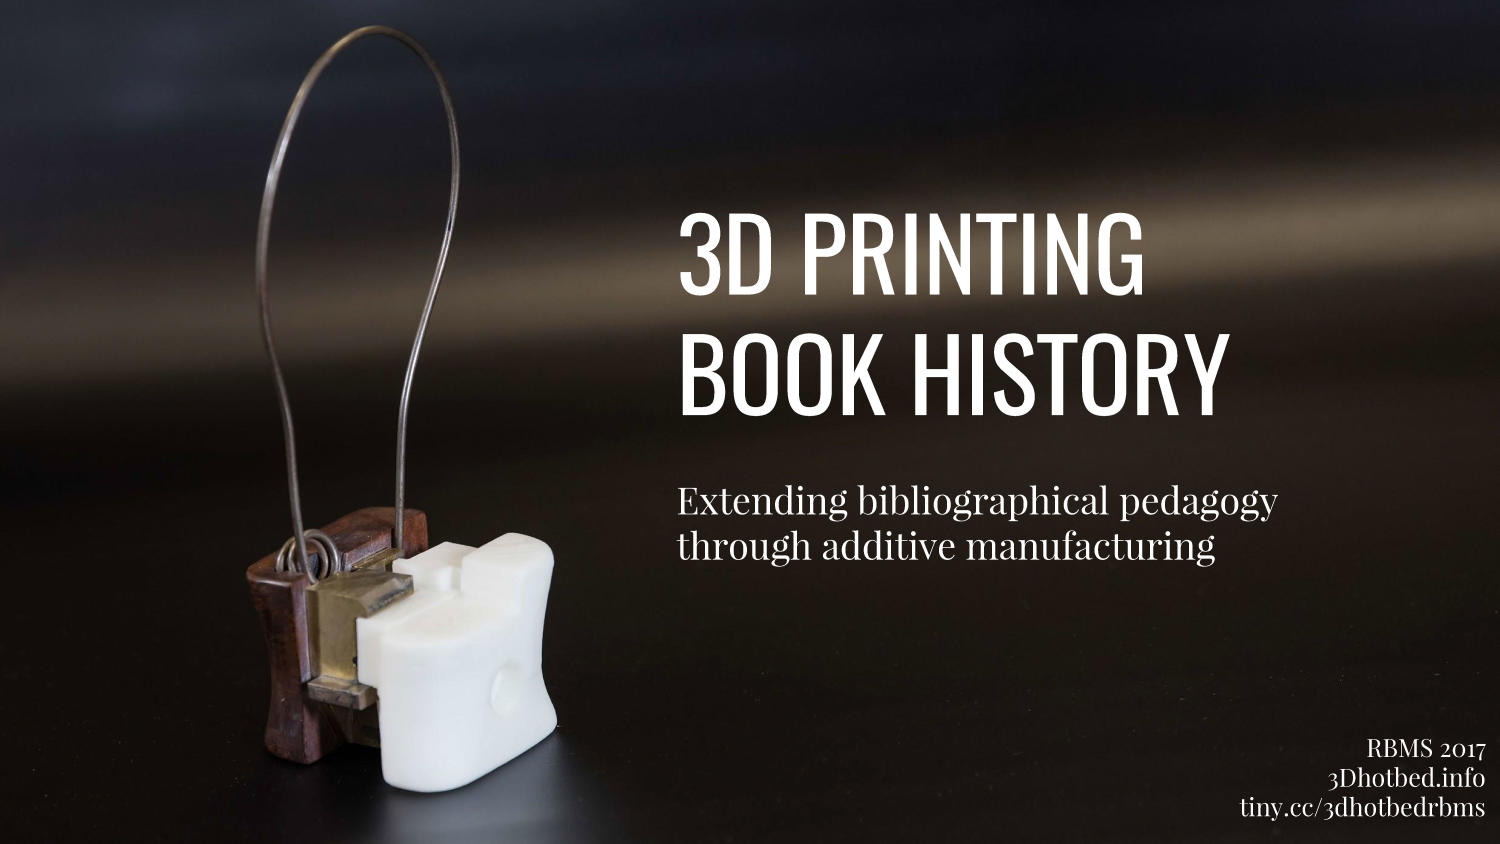 3D Printing Book History: Extending bibliographical pedagogy through additive manufacturing                                                                                                      1